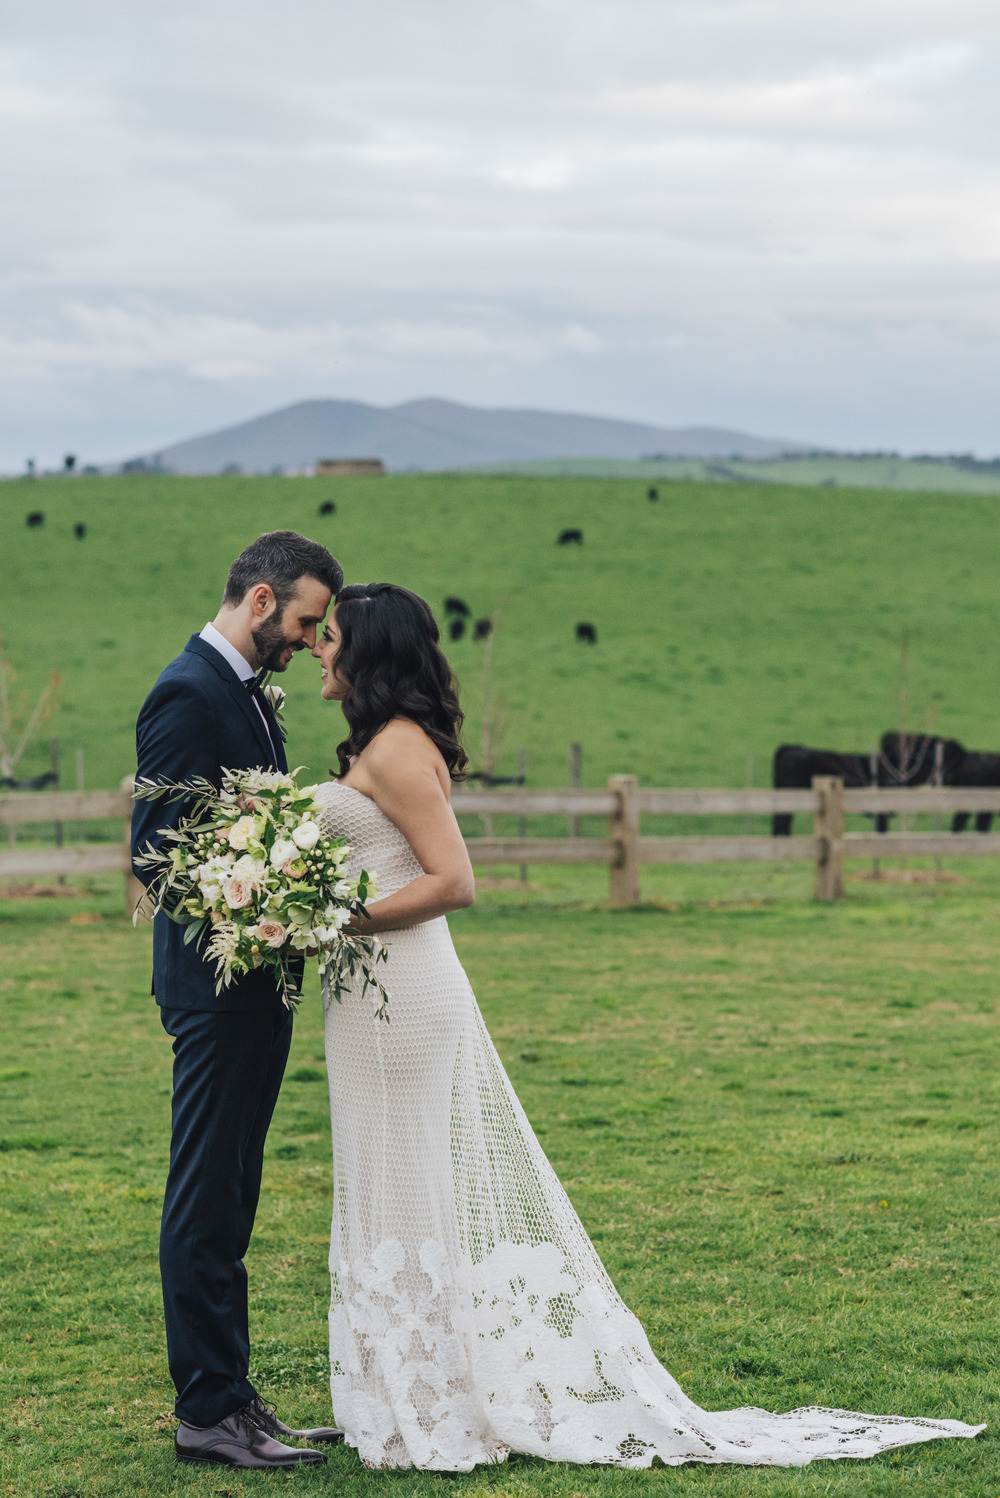 the-white-tree-photography-zonzo-estate-yarra-valley-australian-wedding-rustic-chic-wedding-57